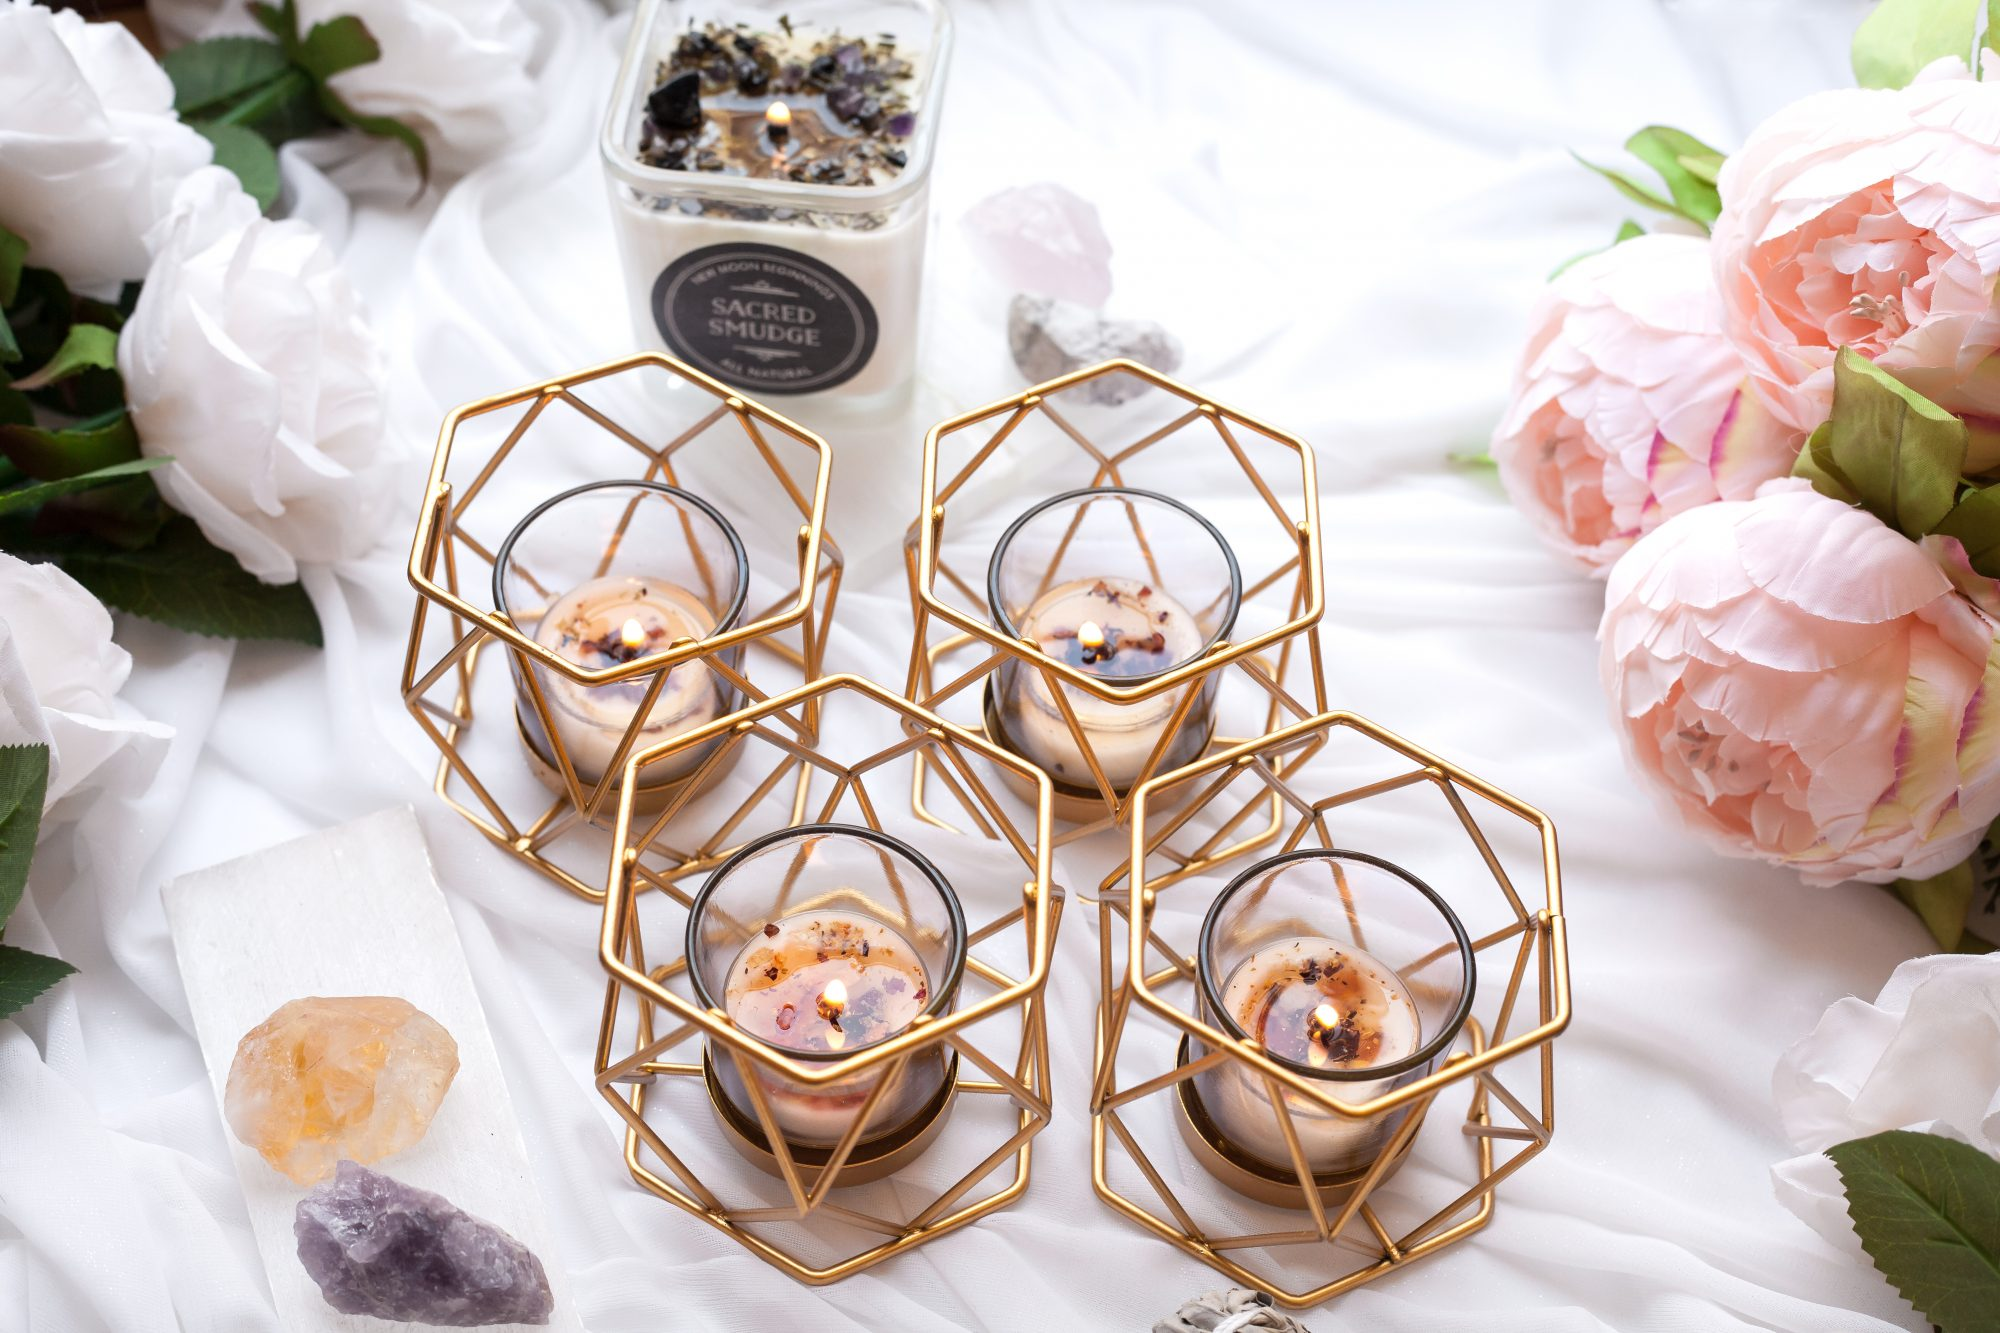 Crystal and herb-infused candles are a great way to use the energy of crystals in a decorative way. These candles from New Moon Beginnings are infused with crystals and herbs and are made with soy wax and essential oils. - www.theballeronabudget.com